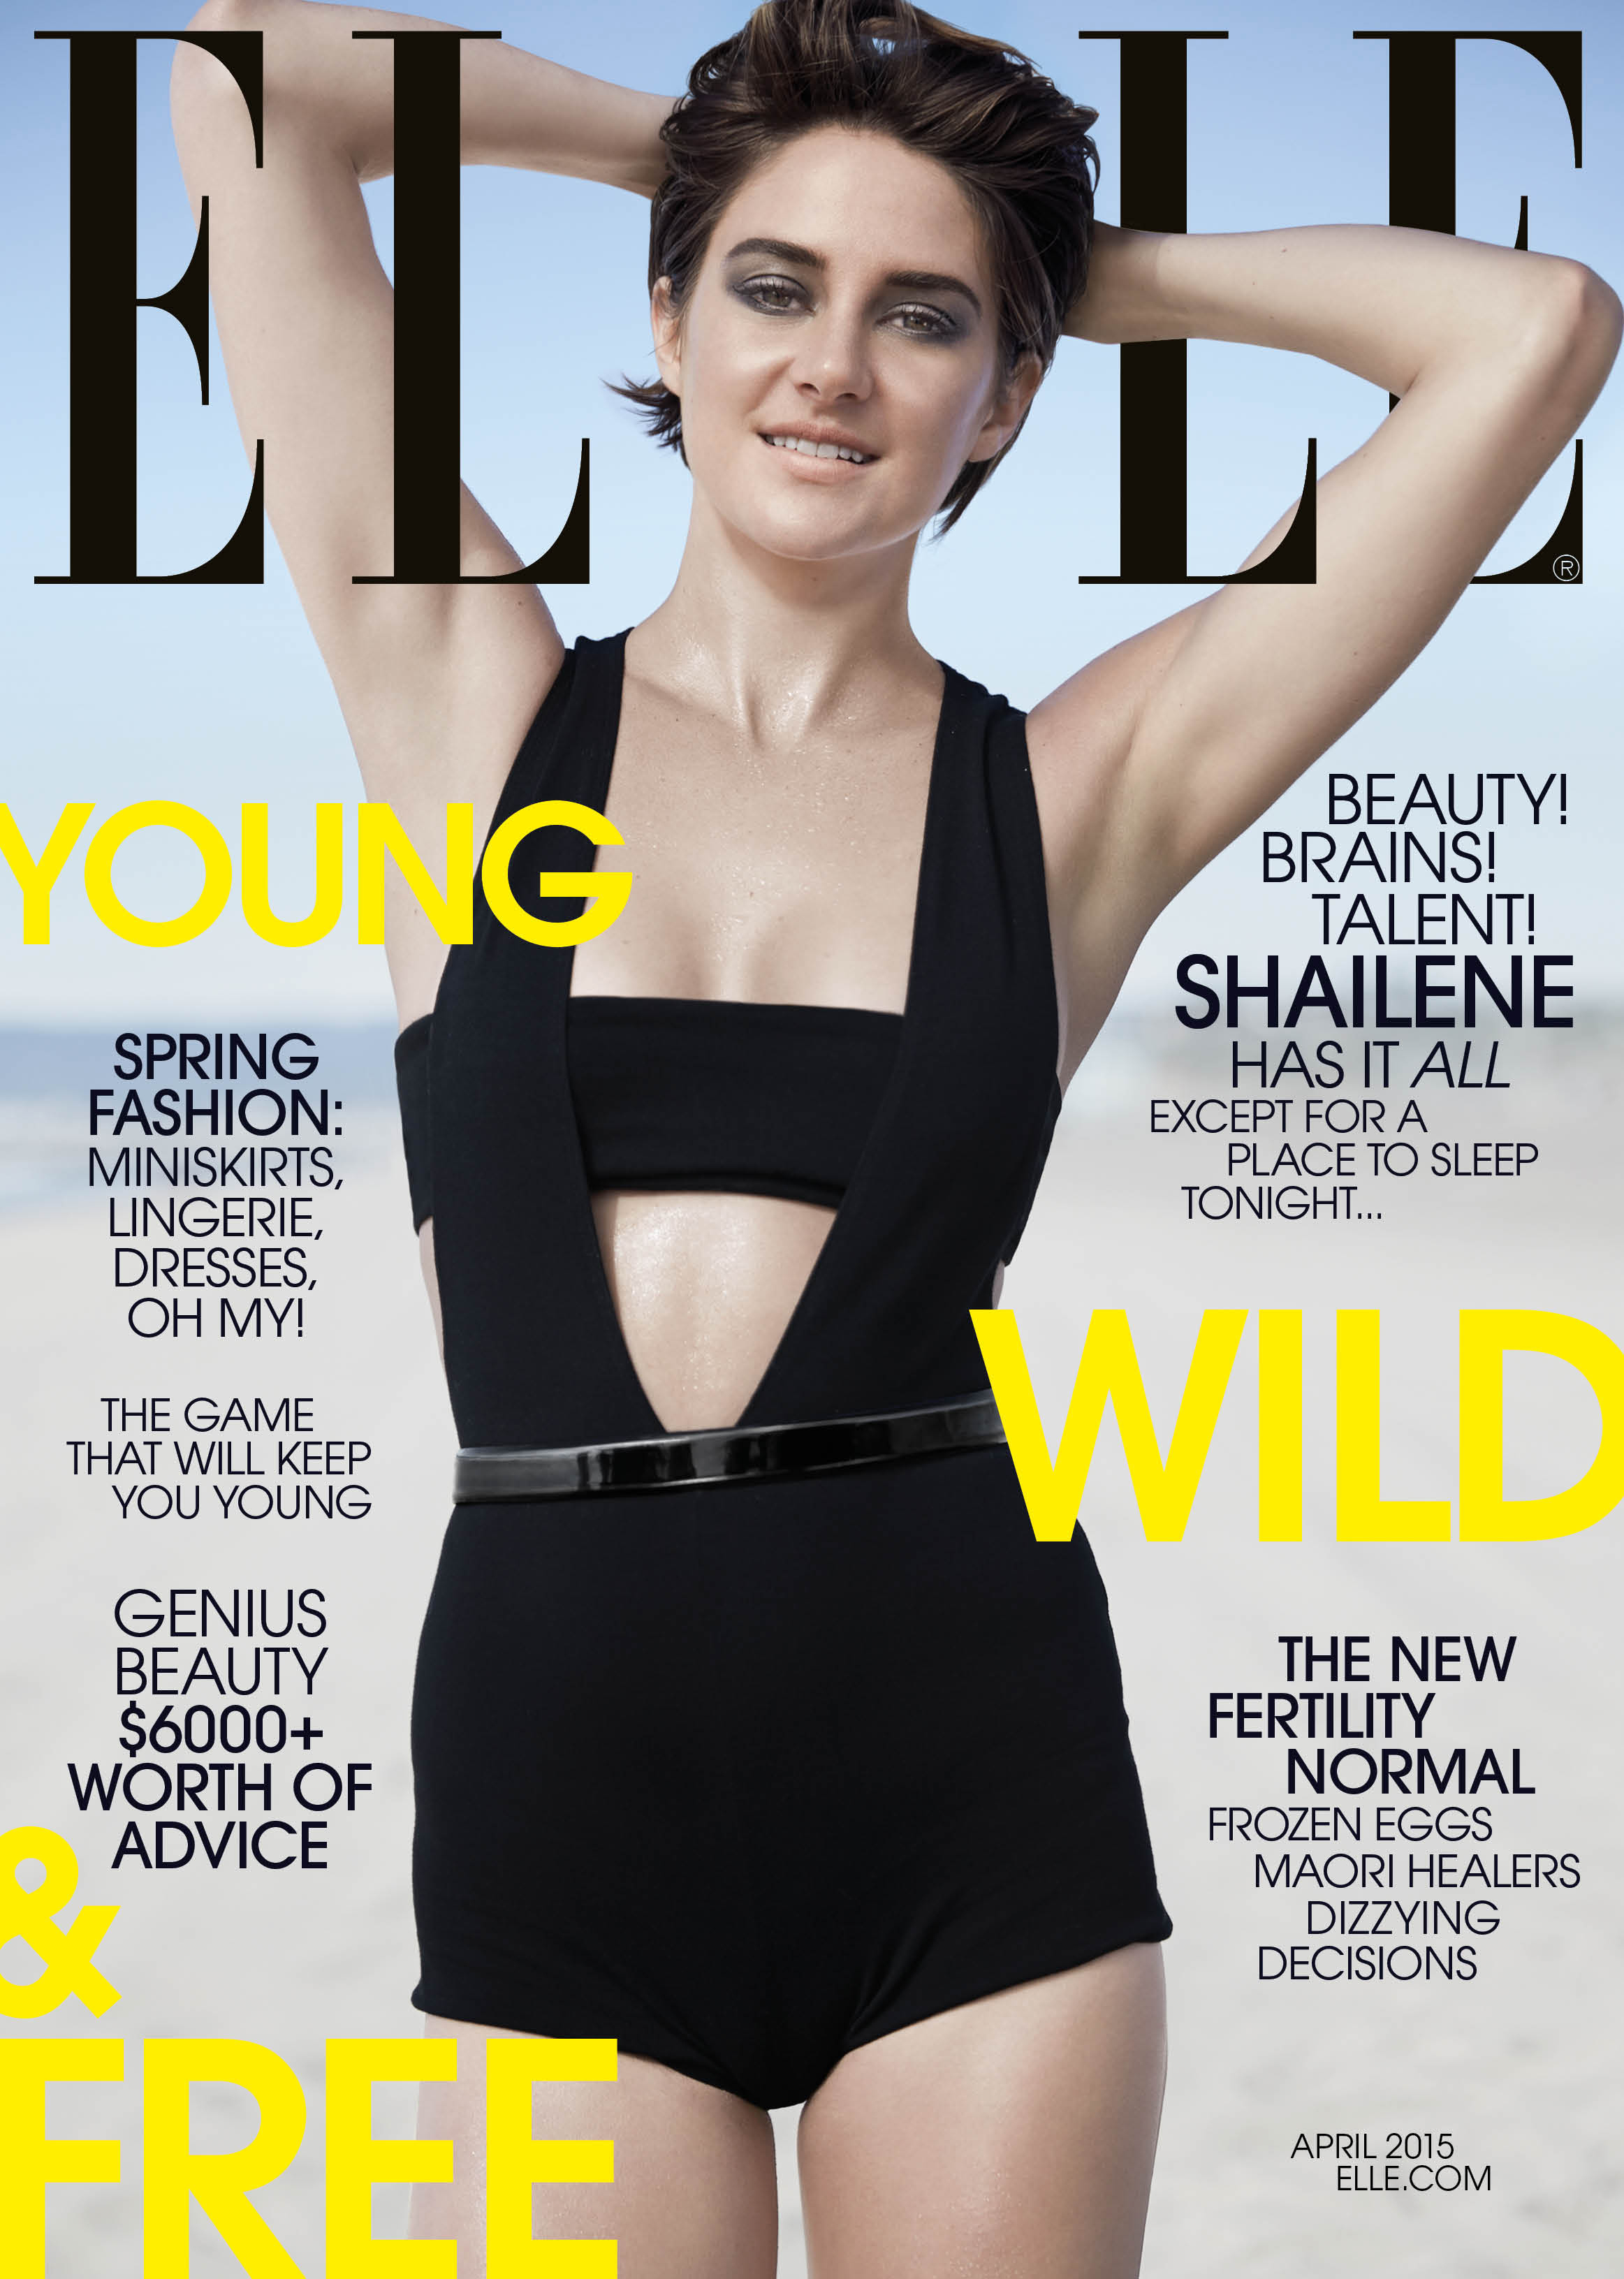 ELLE April 15 Cover